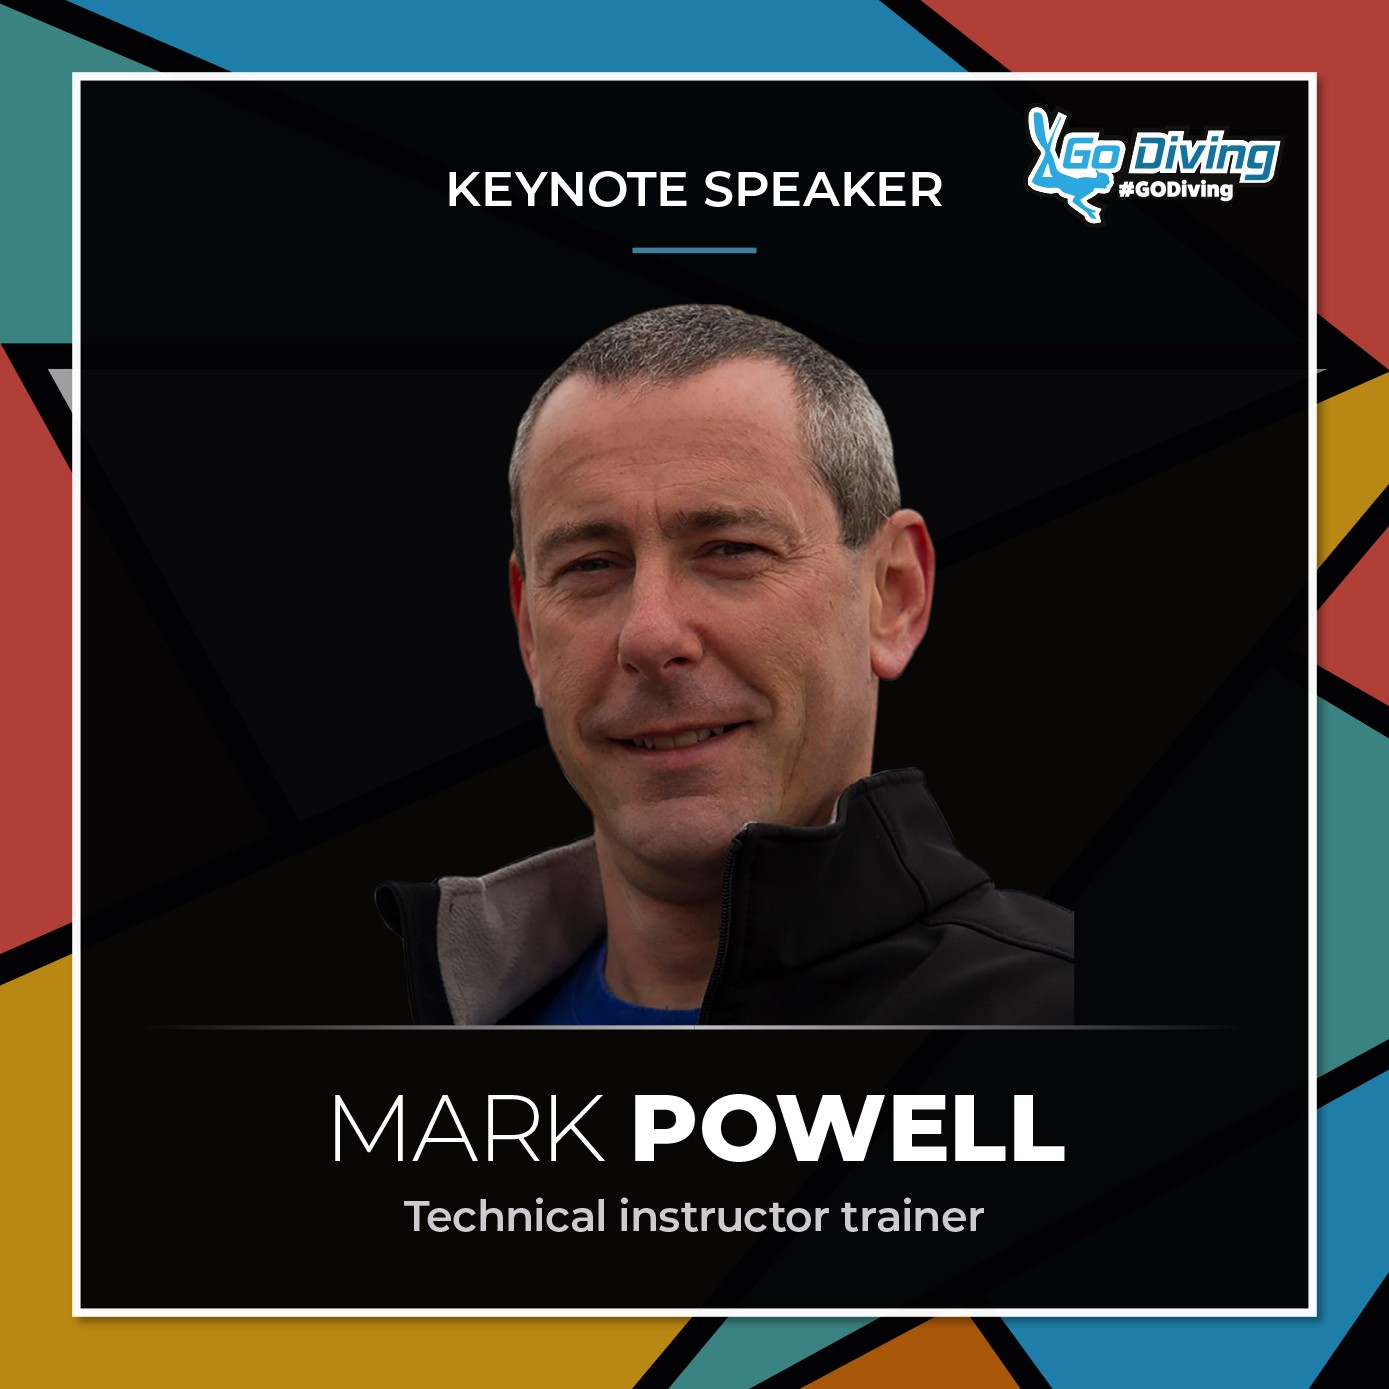 GO Diving Show Speaker Profile - Mark Powell 6